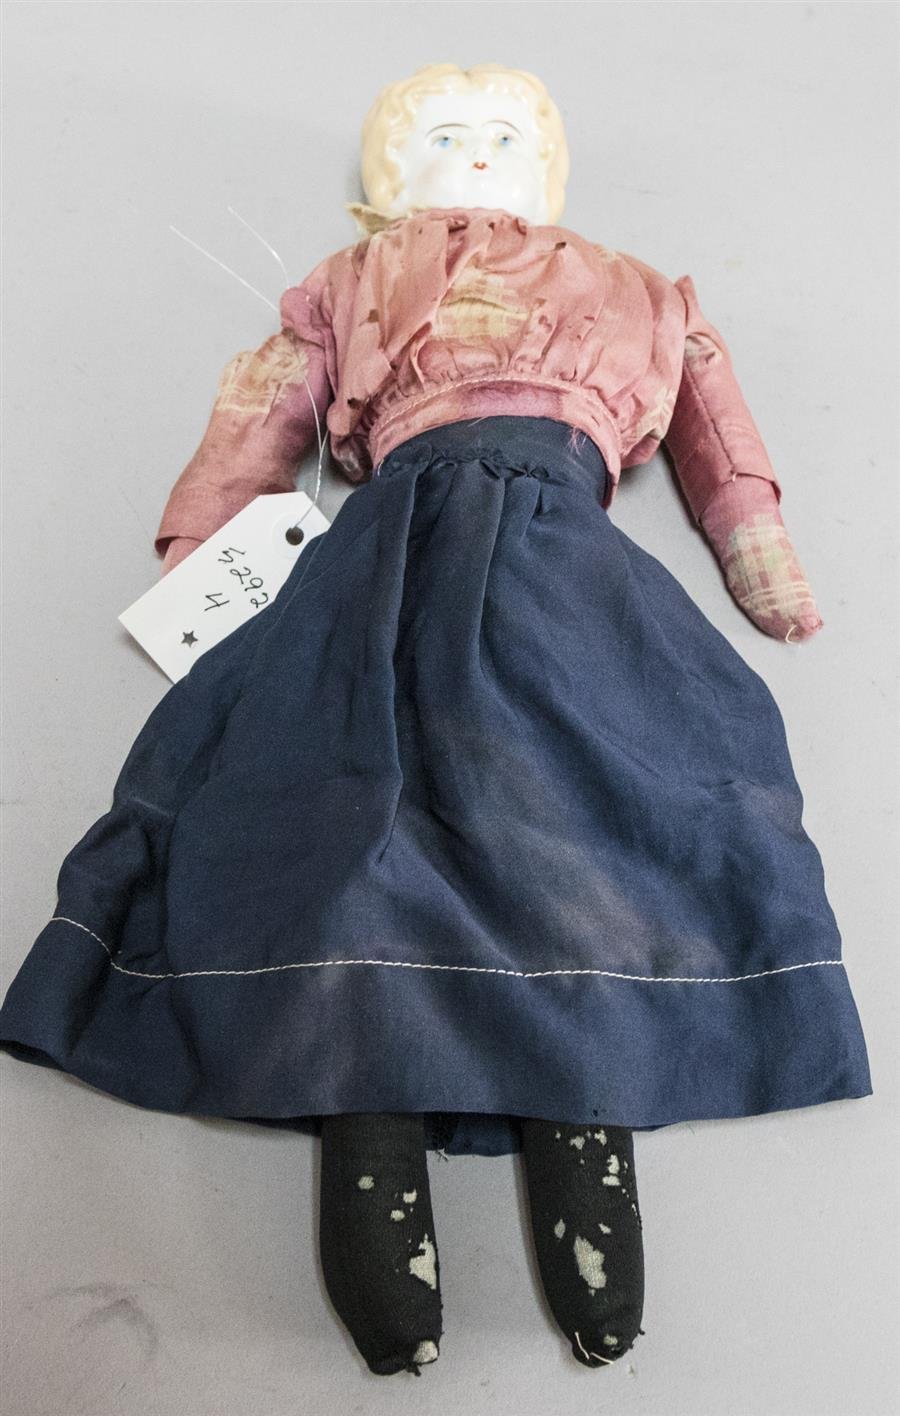 A porcelain head Minerva type doll with cloth body